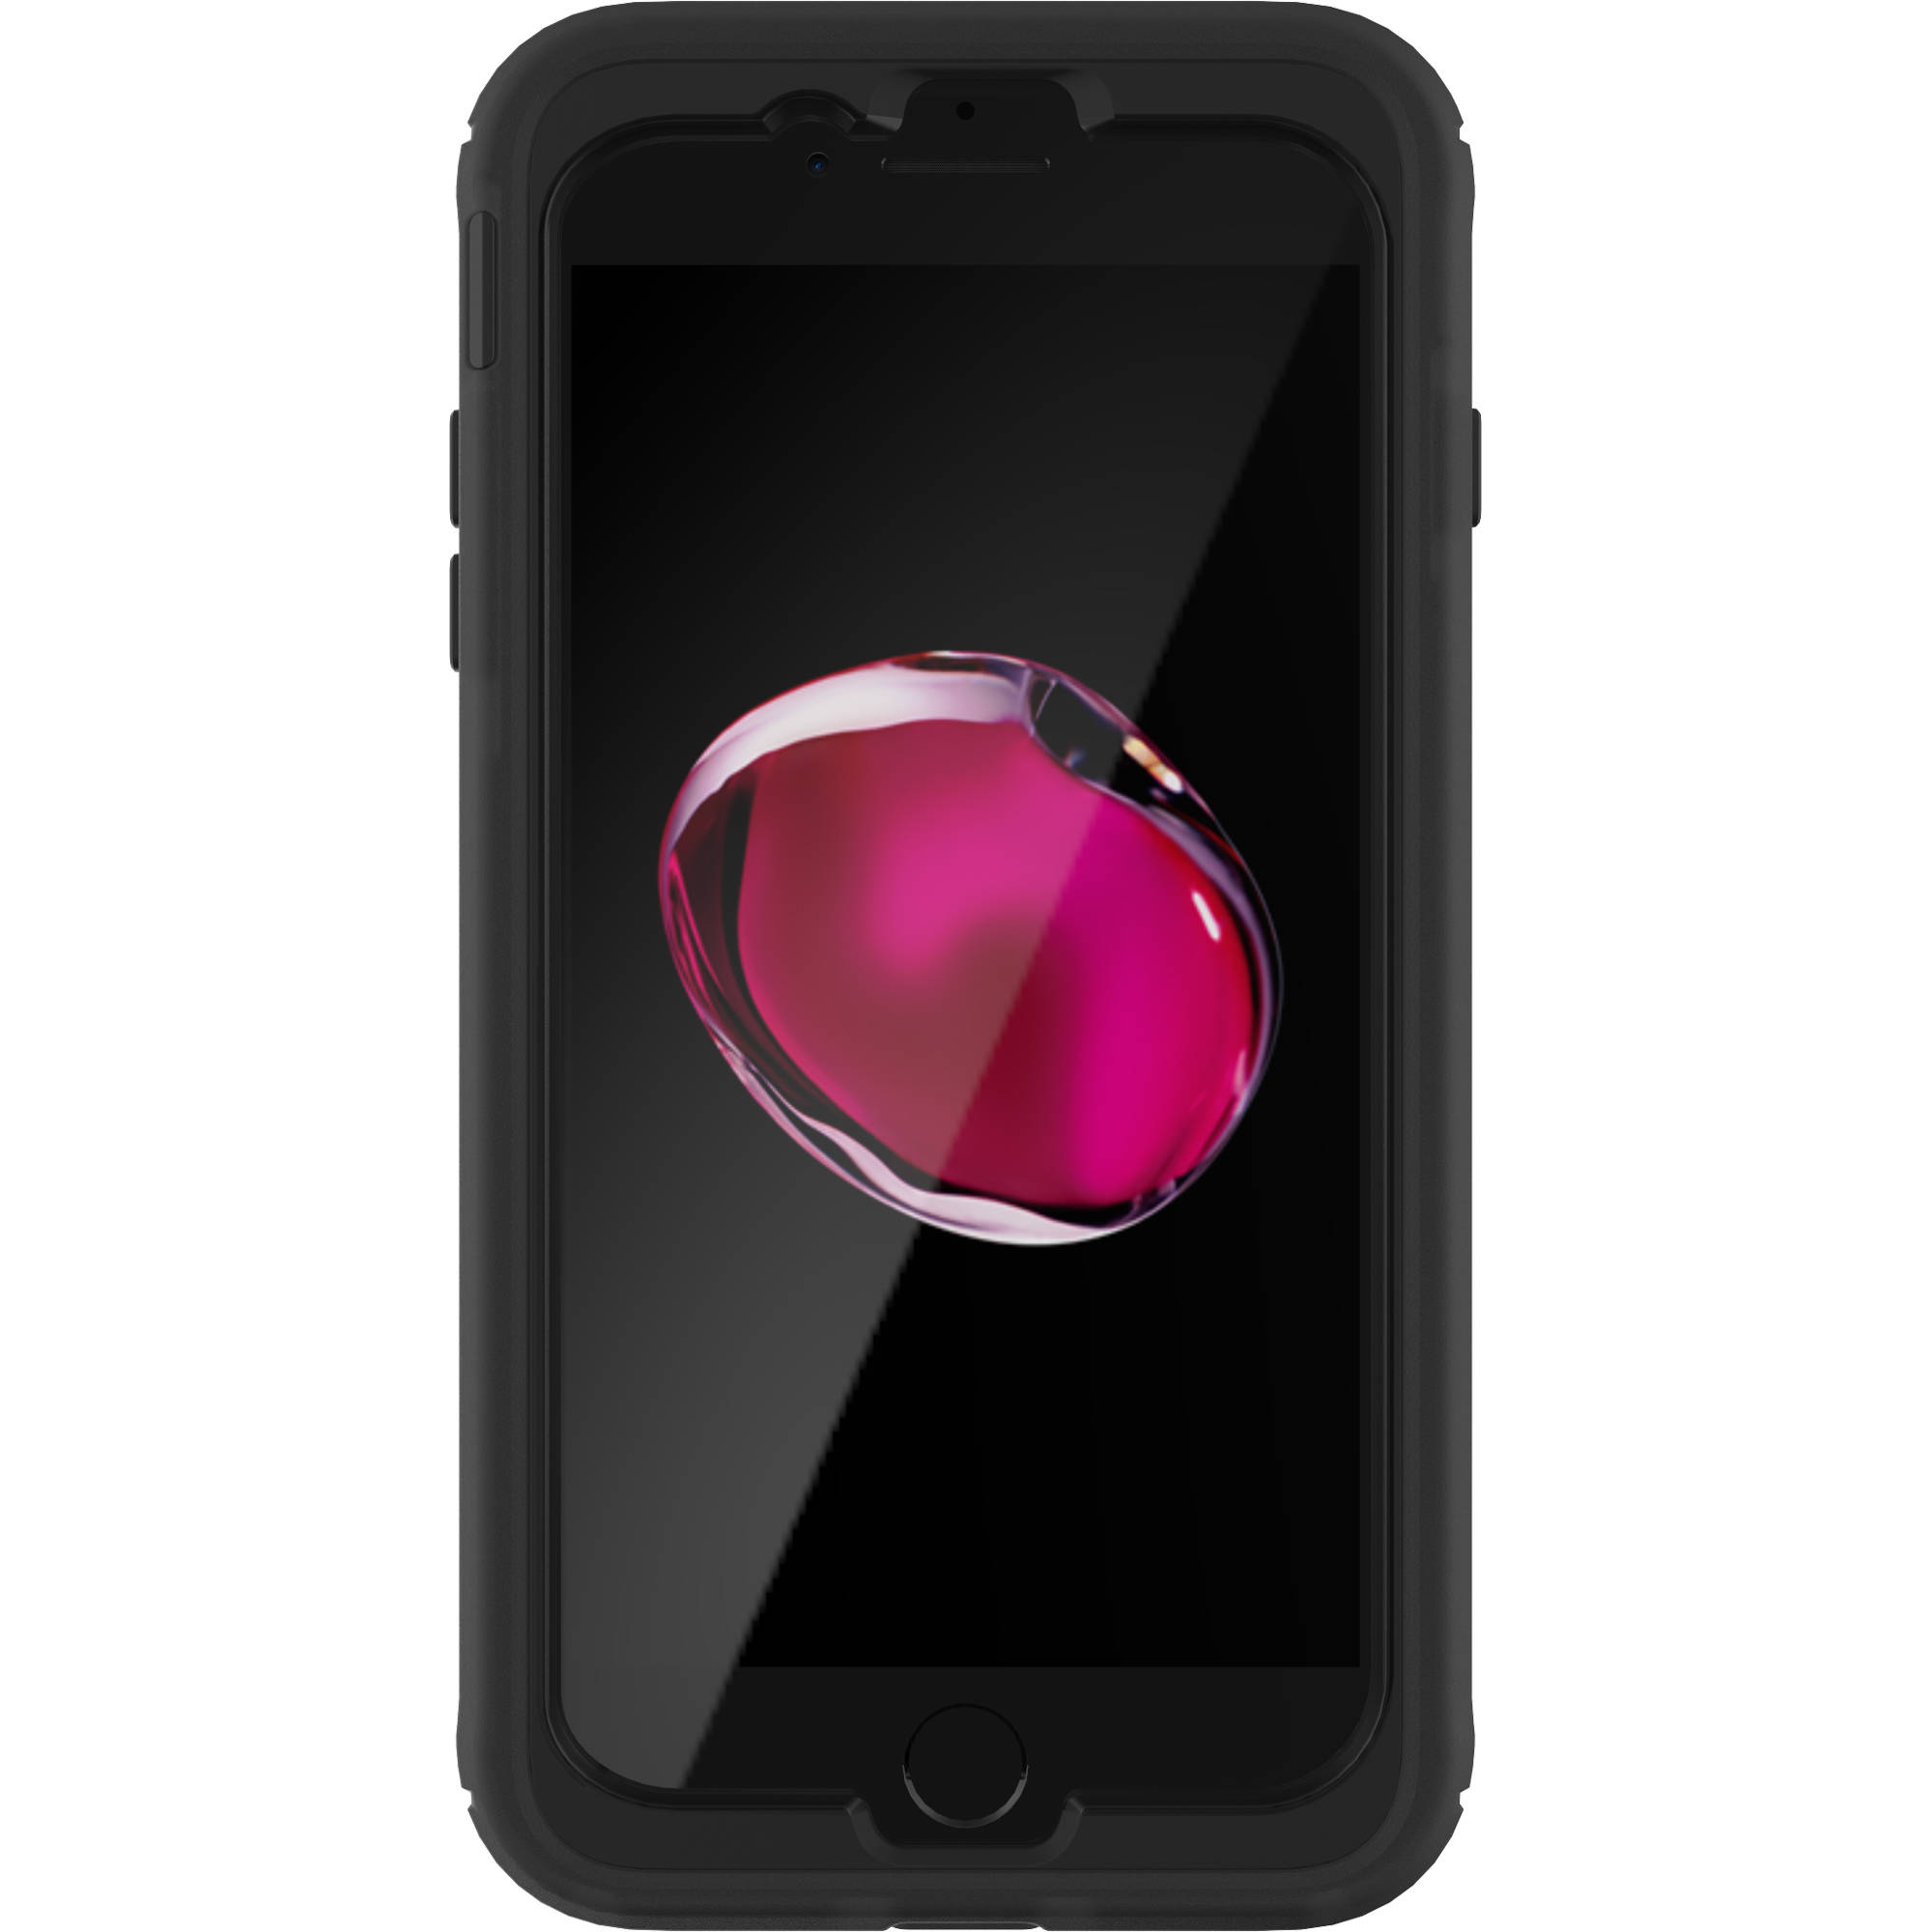 online retailer acb15 8d69b Tech21 Evo Tactical Extreme Edition Case for iPhone 7 Plus (Black)